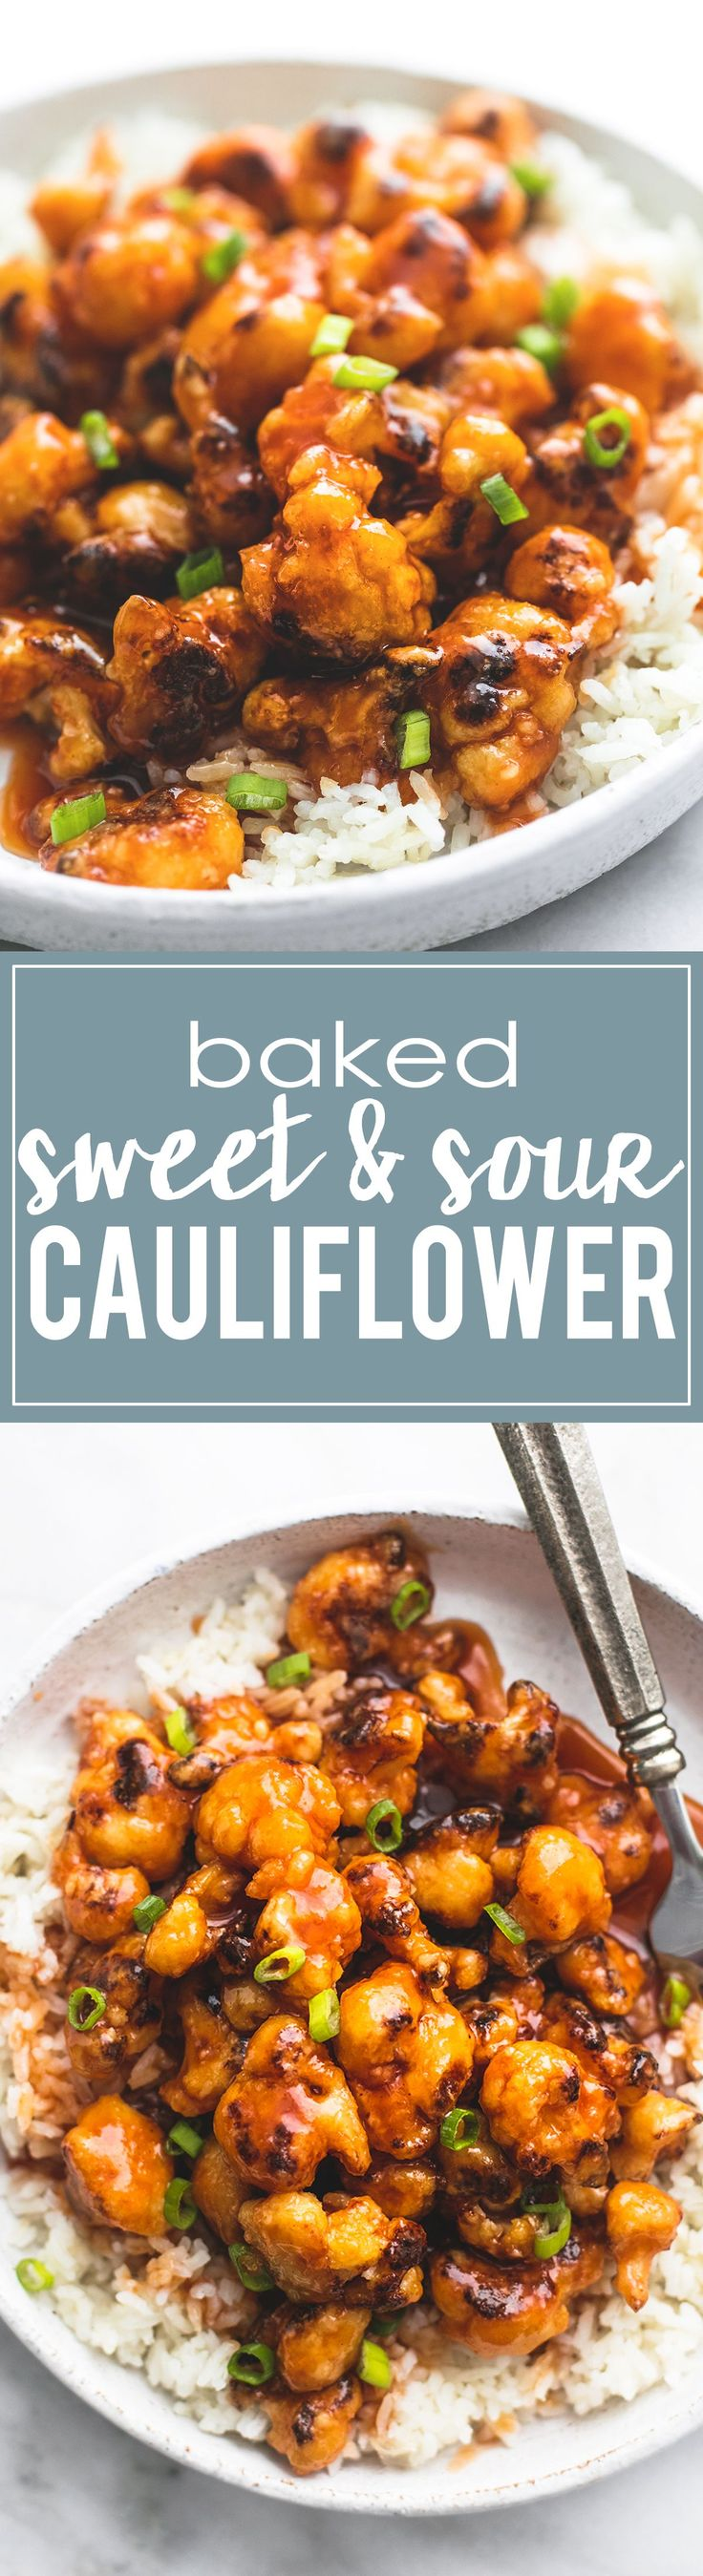 Main Course Vegetarian Dishes Part - 32: Baked Sweet U0026 Sour Cauliflower. Head Of CauliflowerVegan CauliflowerBuffalo  CauliflowerCauliflower RecipesVegetarian Main ...